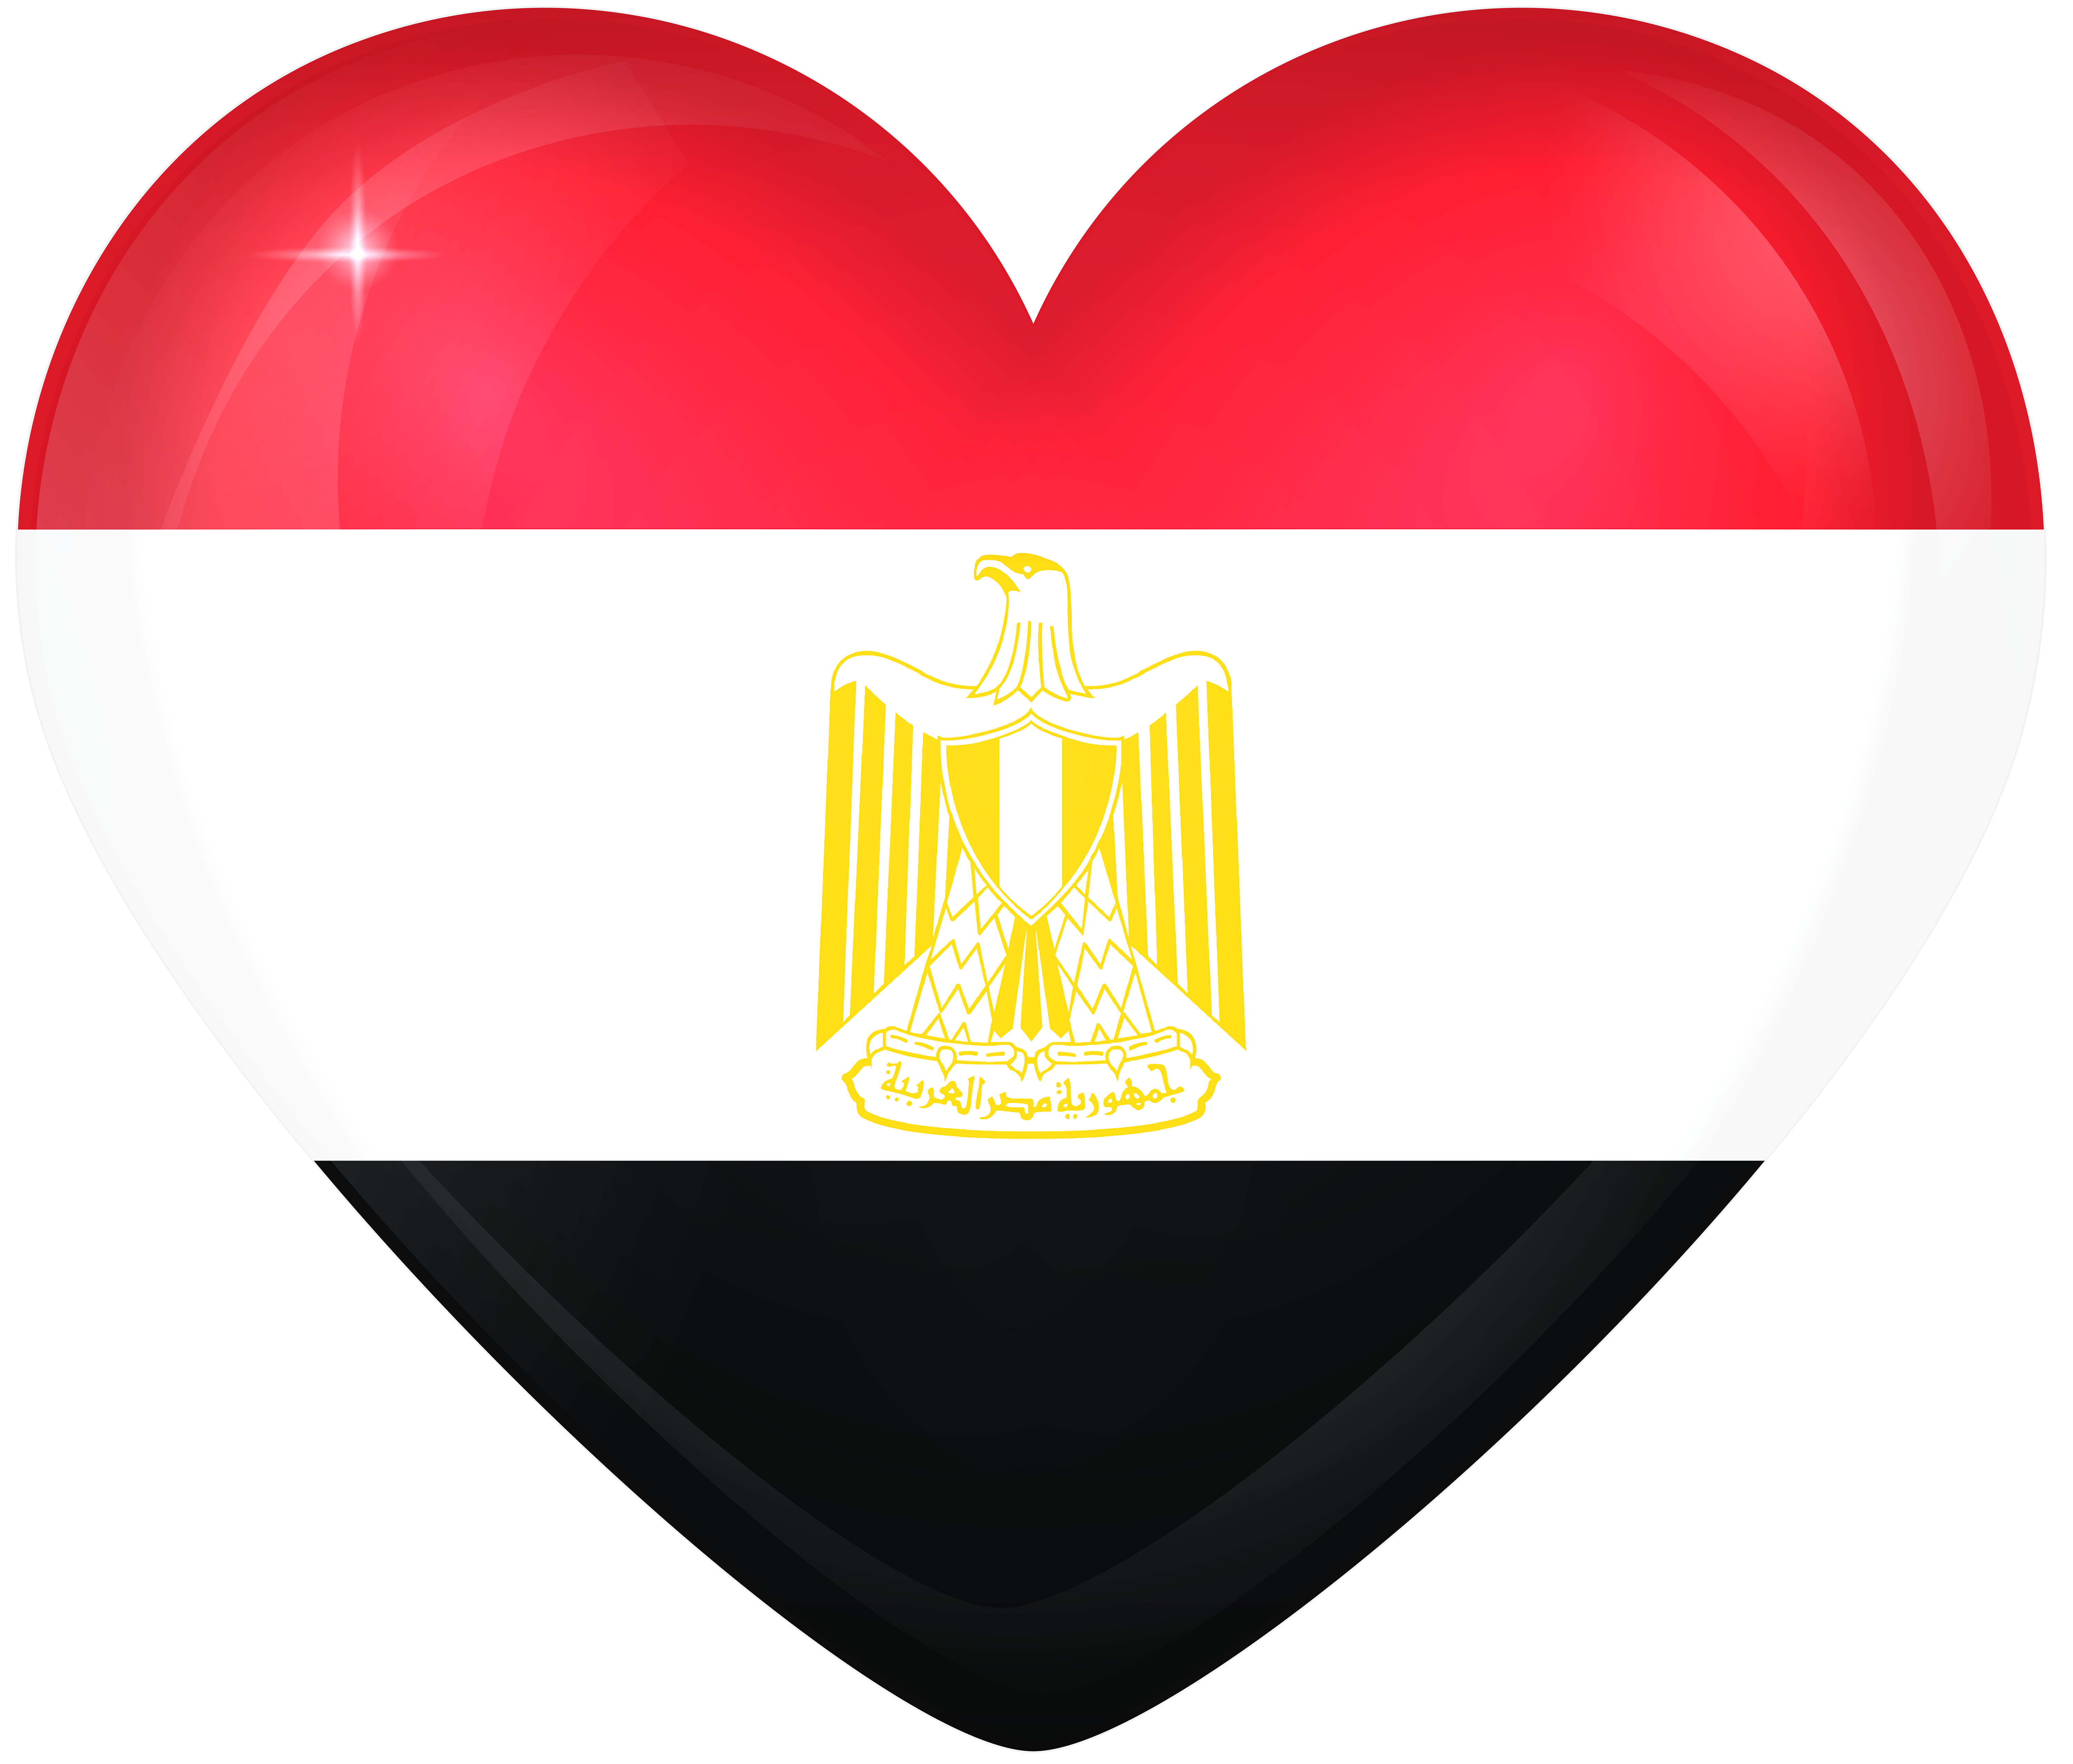 Heartbeat clipart vital sign. Egypt large heart flag